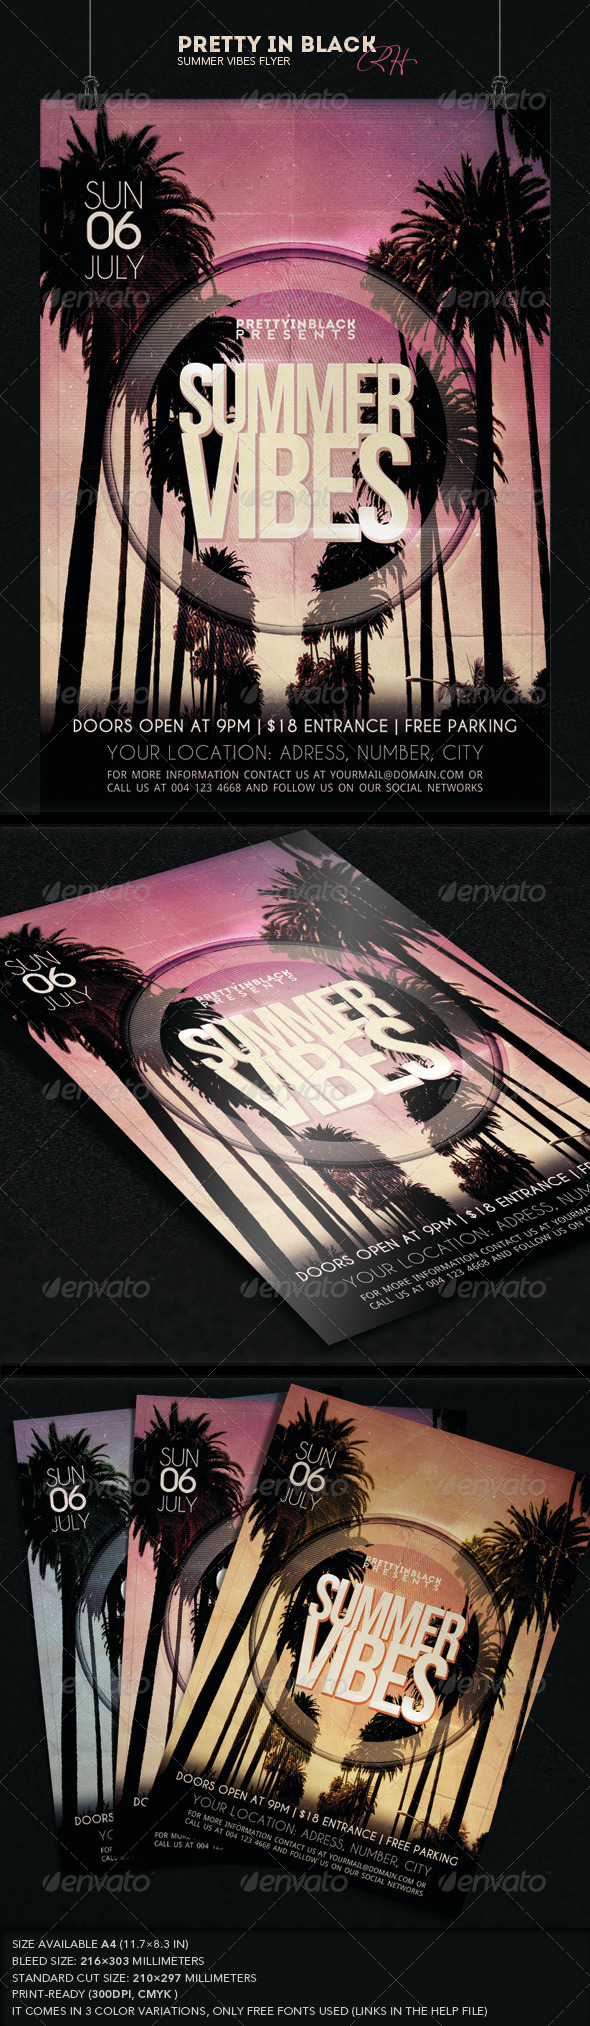 GraphicRiver Summer Vibes Flyer 7773702